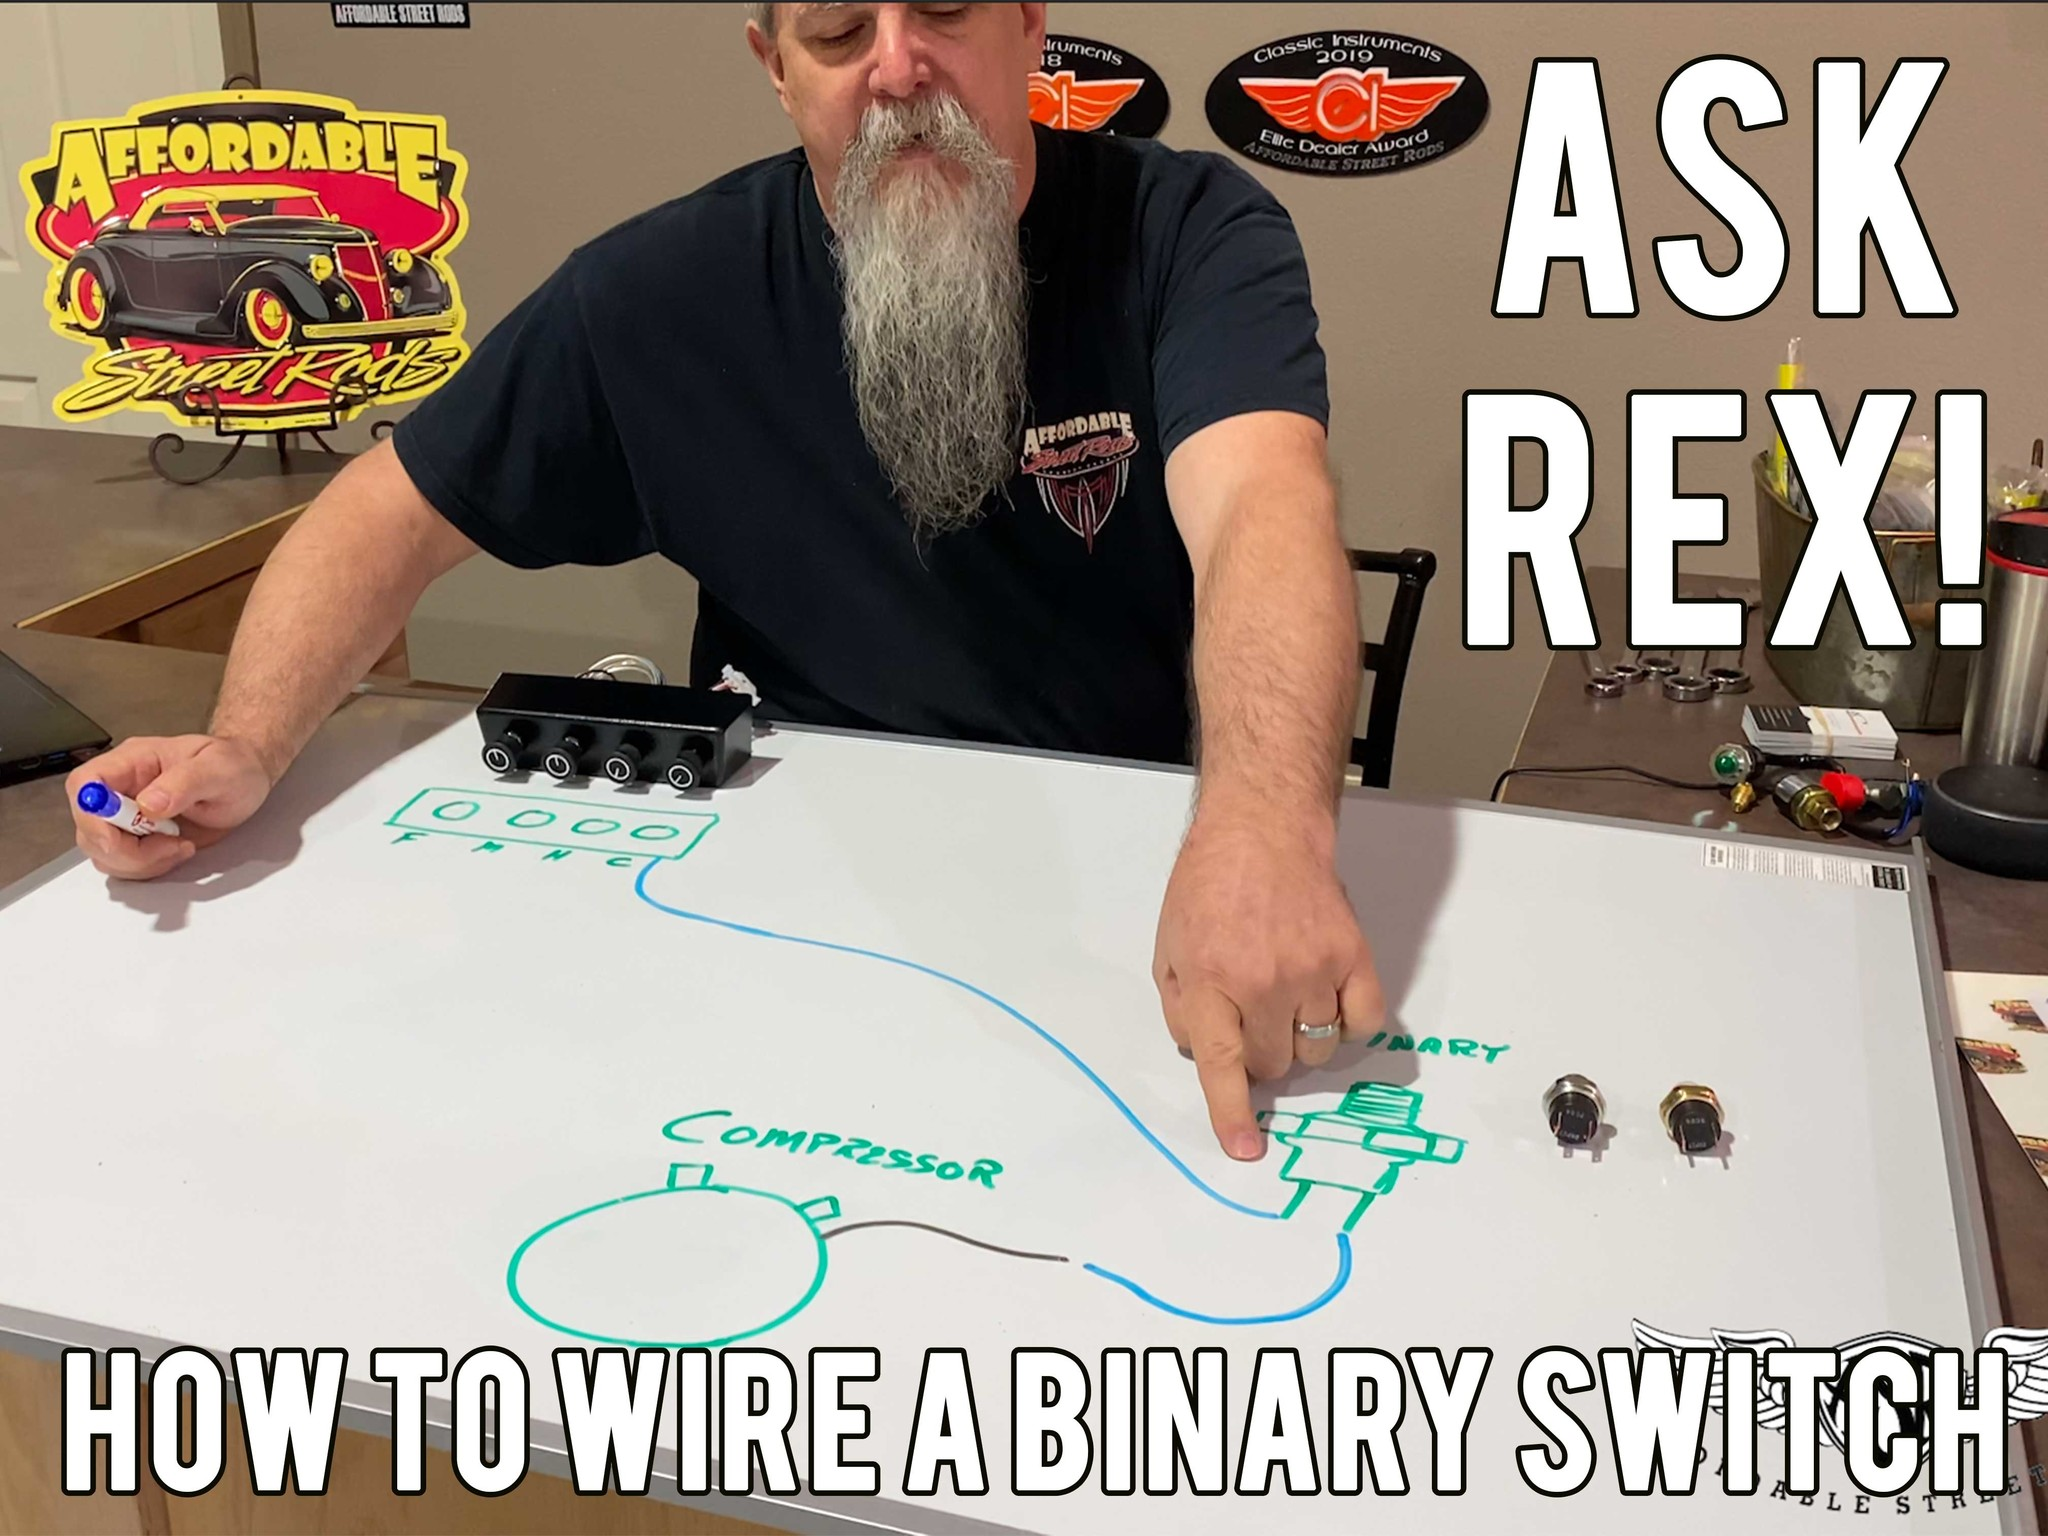 How To Wire A Binary Switch